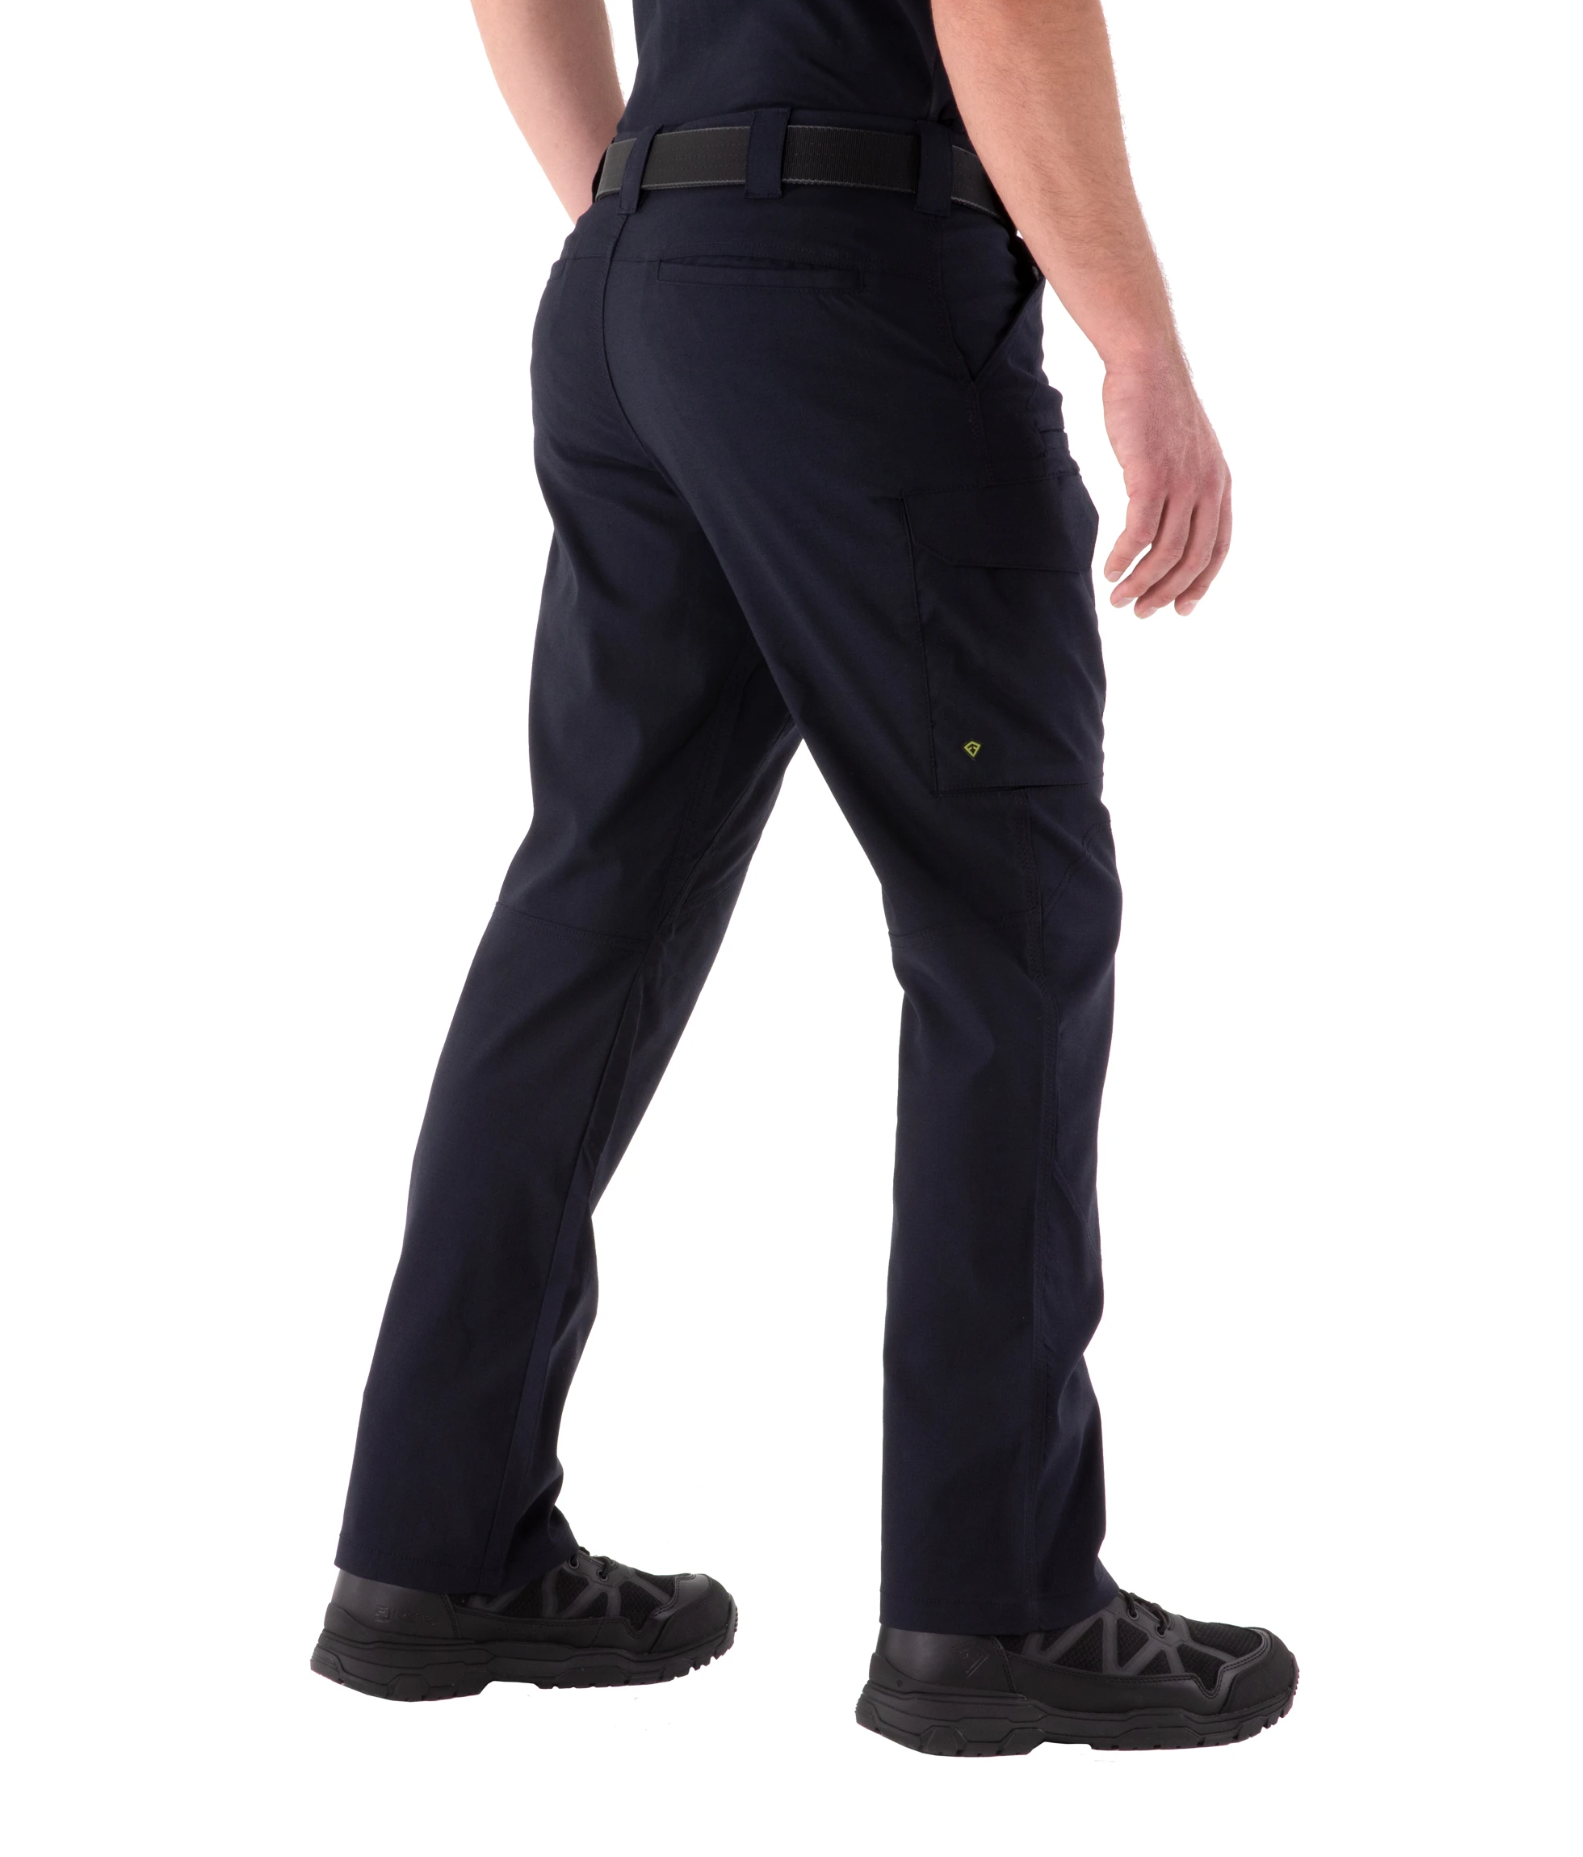 First Tactical V2 Men/'s Tactical Pant with Micro Ripstop